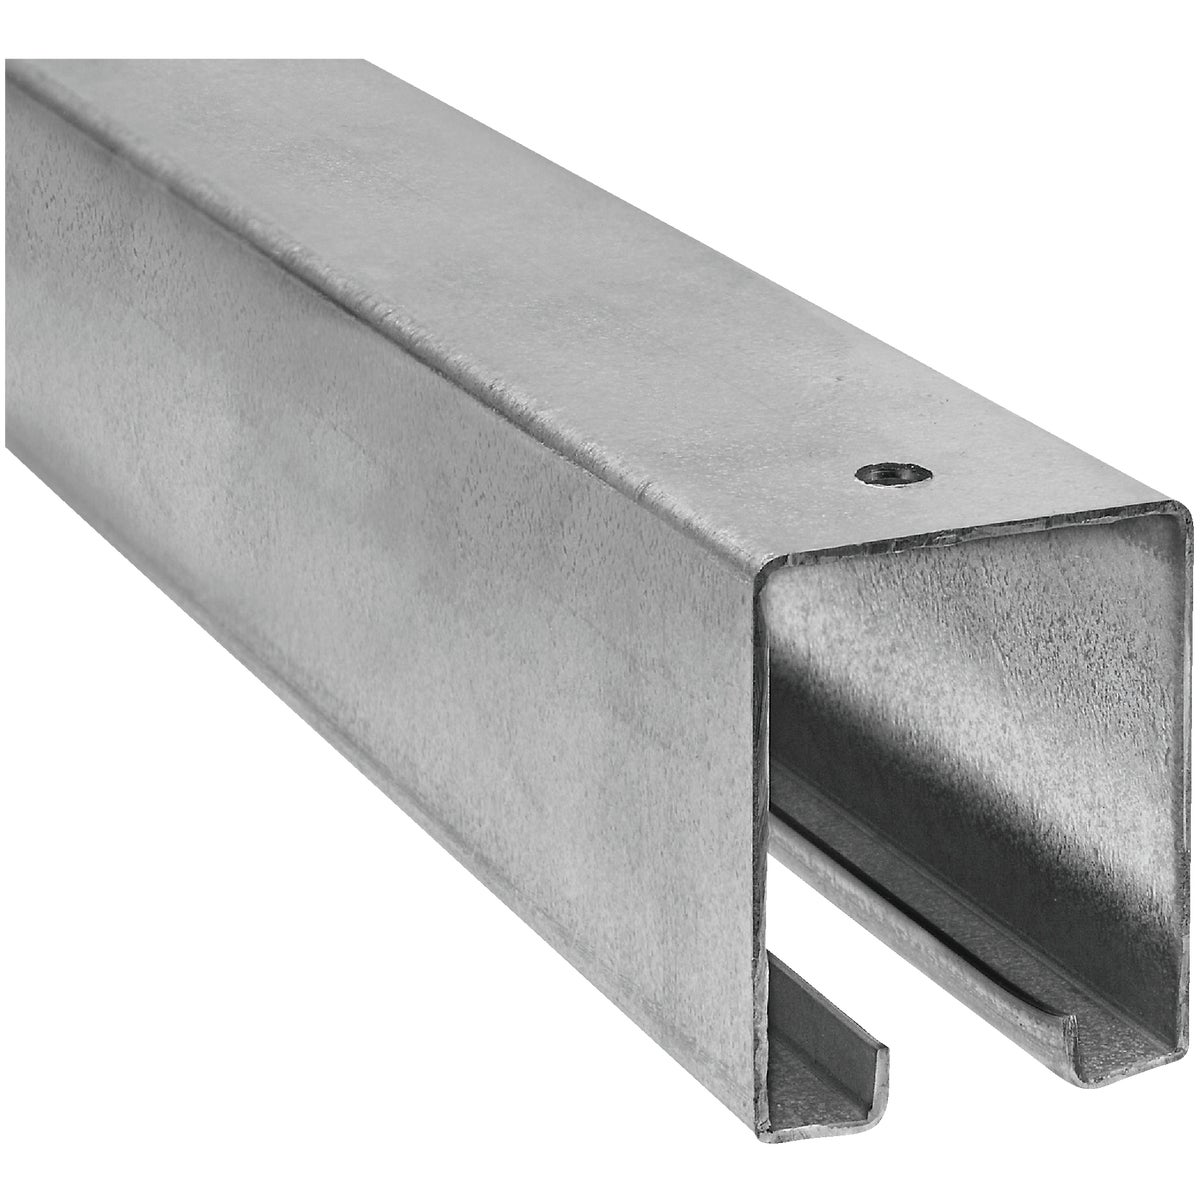 5116 16' GLV DOOR RAIL - N105395 by National Mfg Co